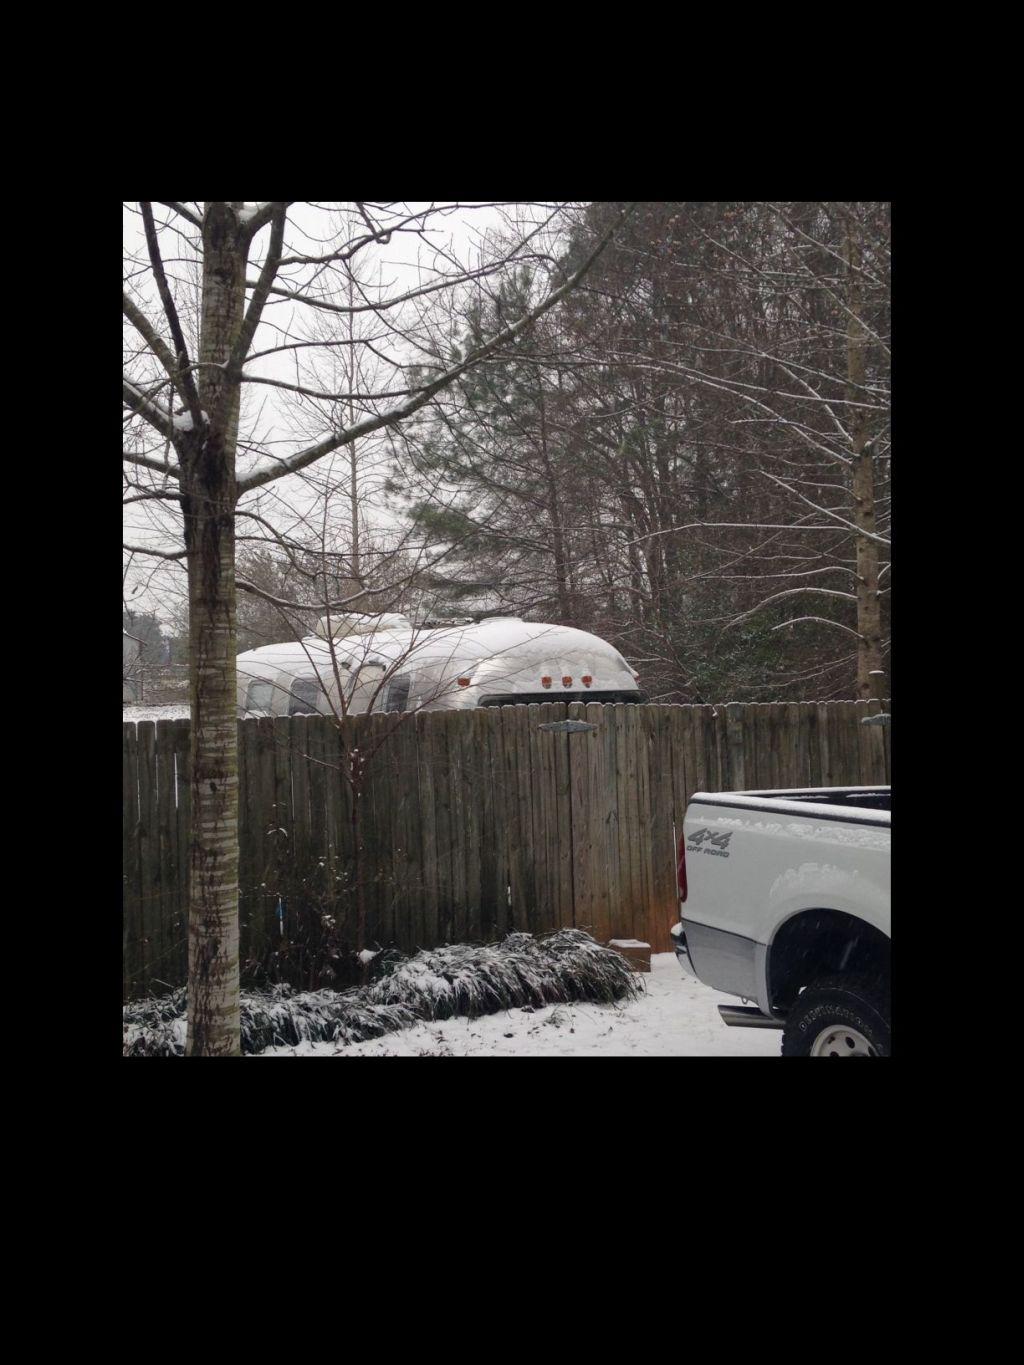 Click image for larger version  Name:Snow!.jpg Views:132 Size:164.2 KB ID:204502